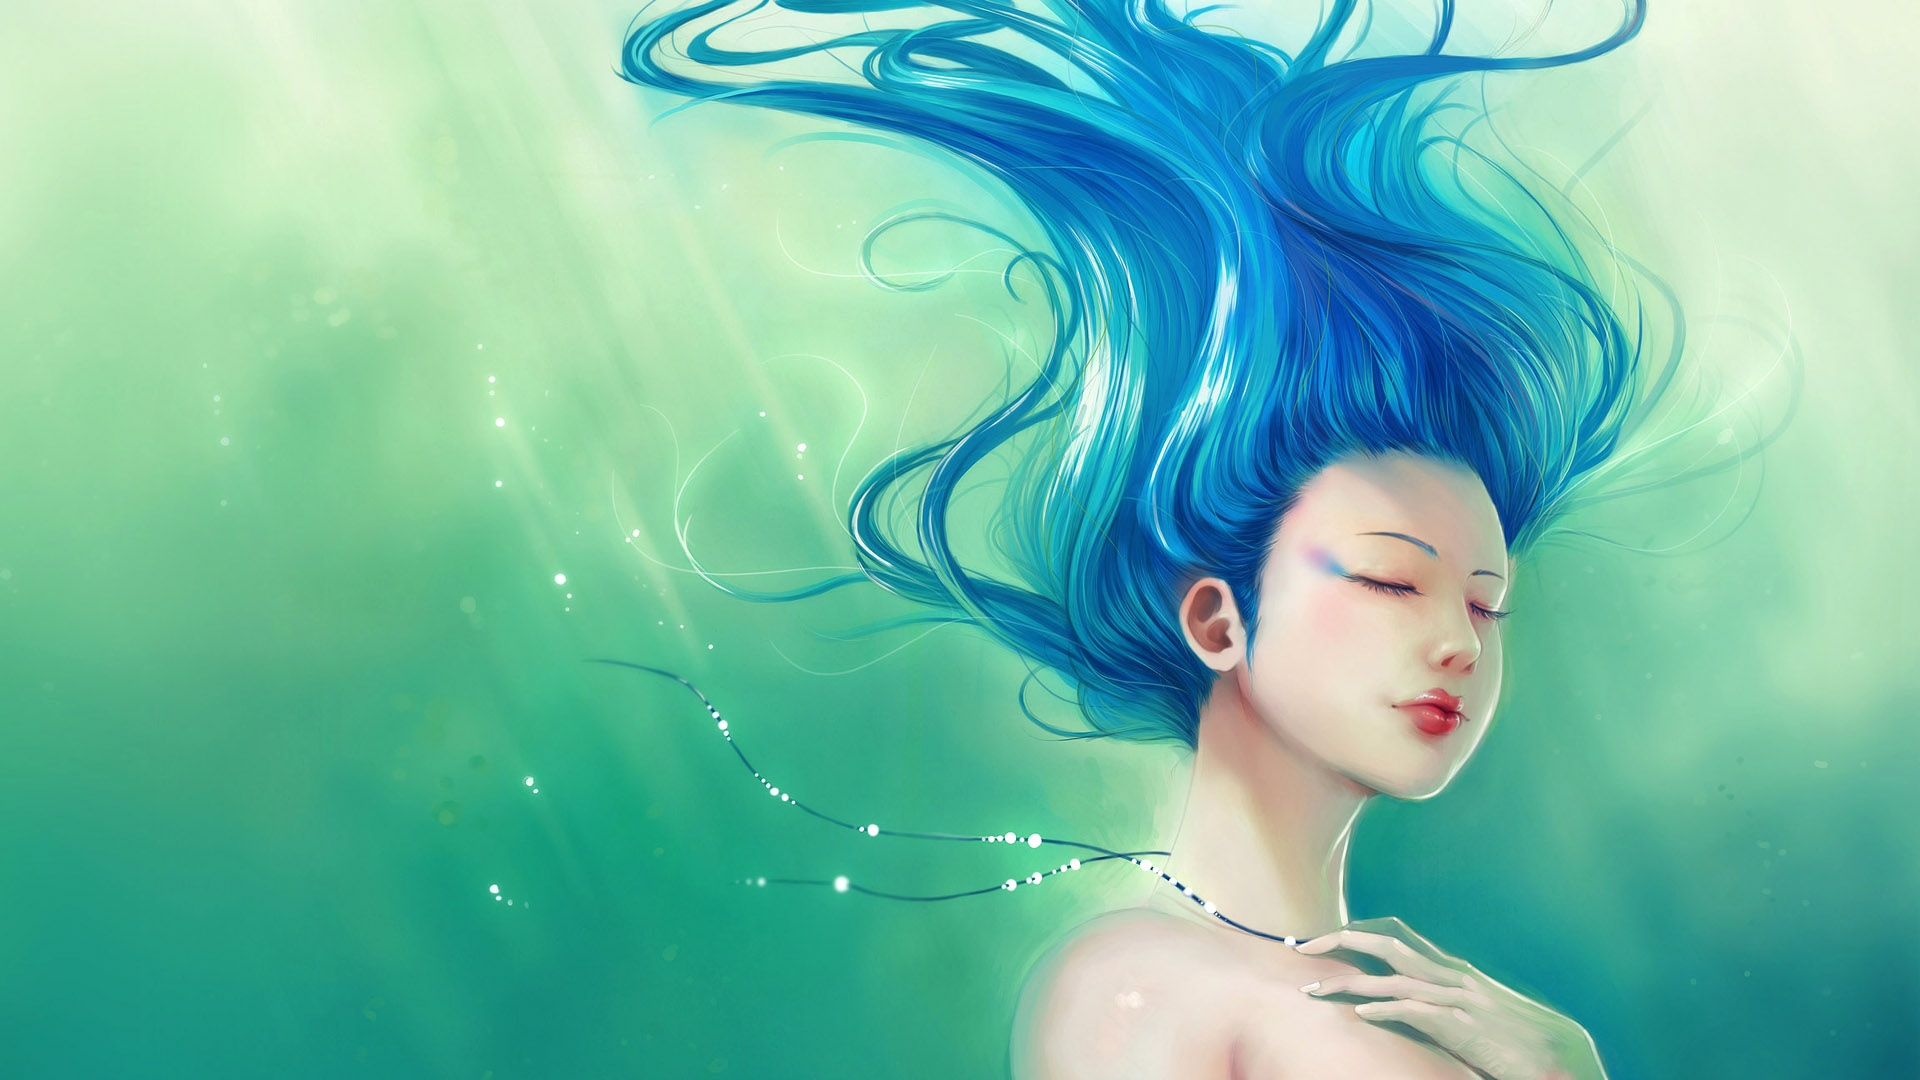 girl-under-water-hair-blue-1920x1080